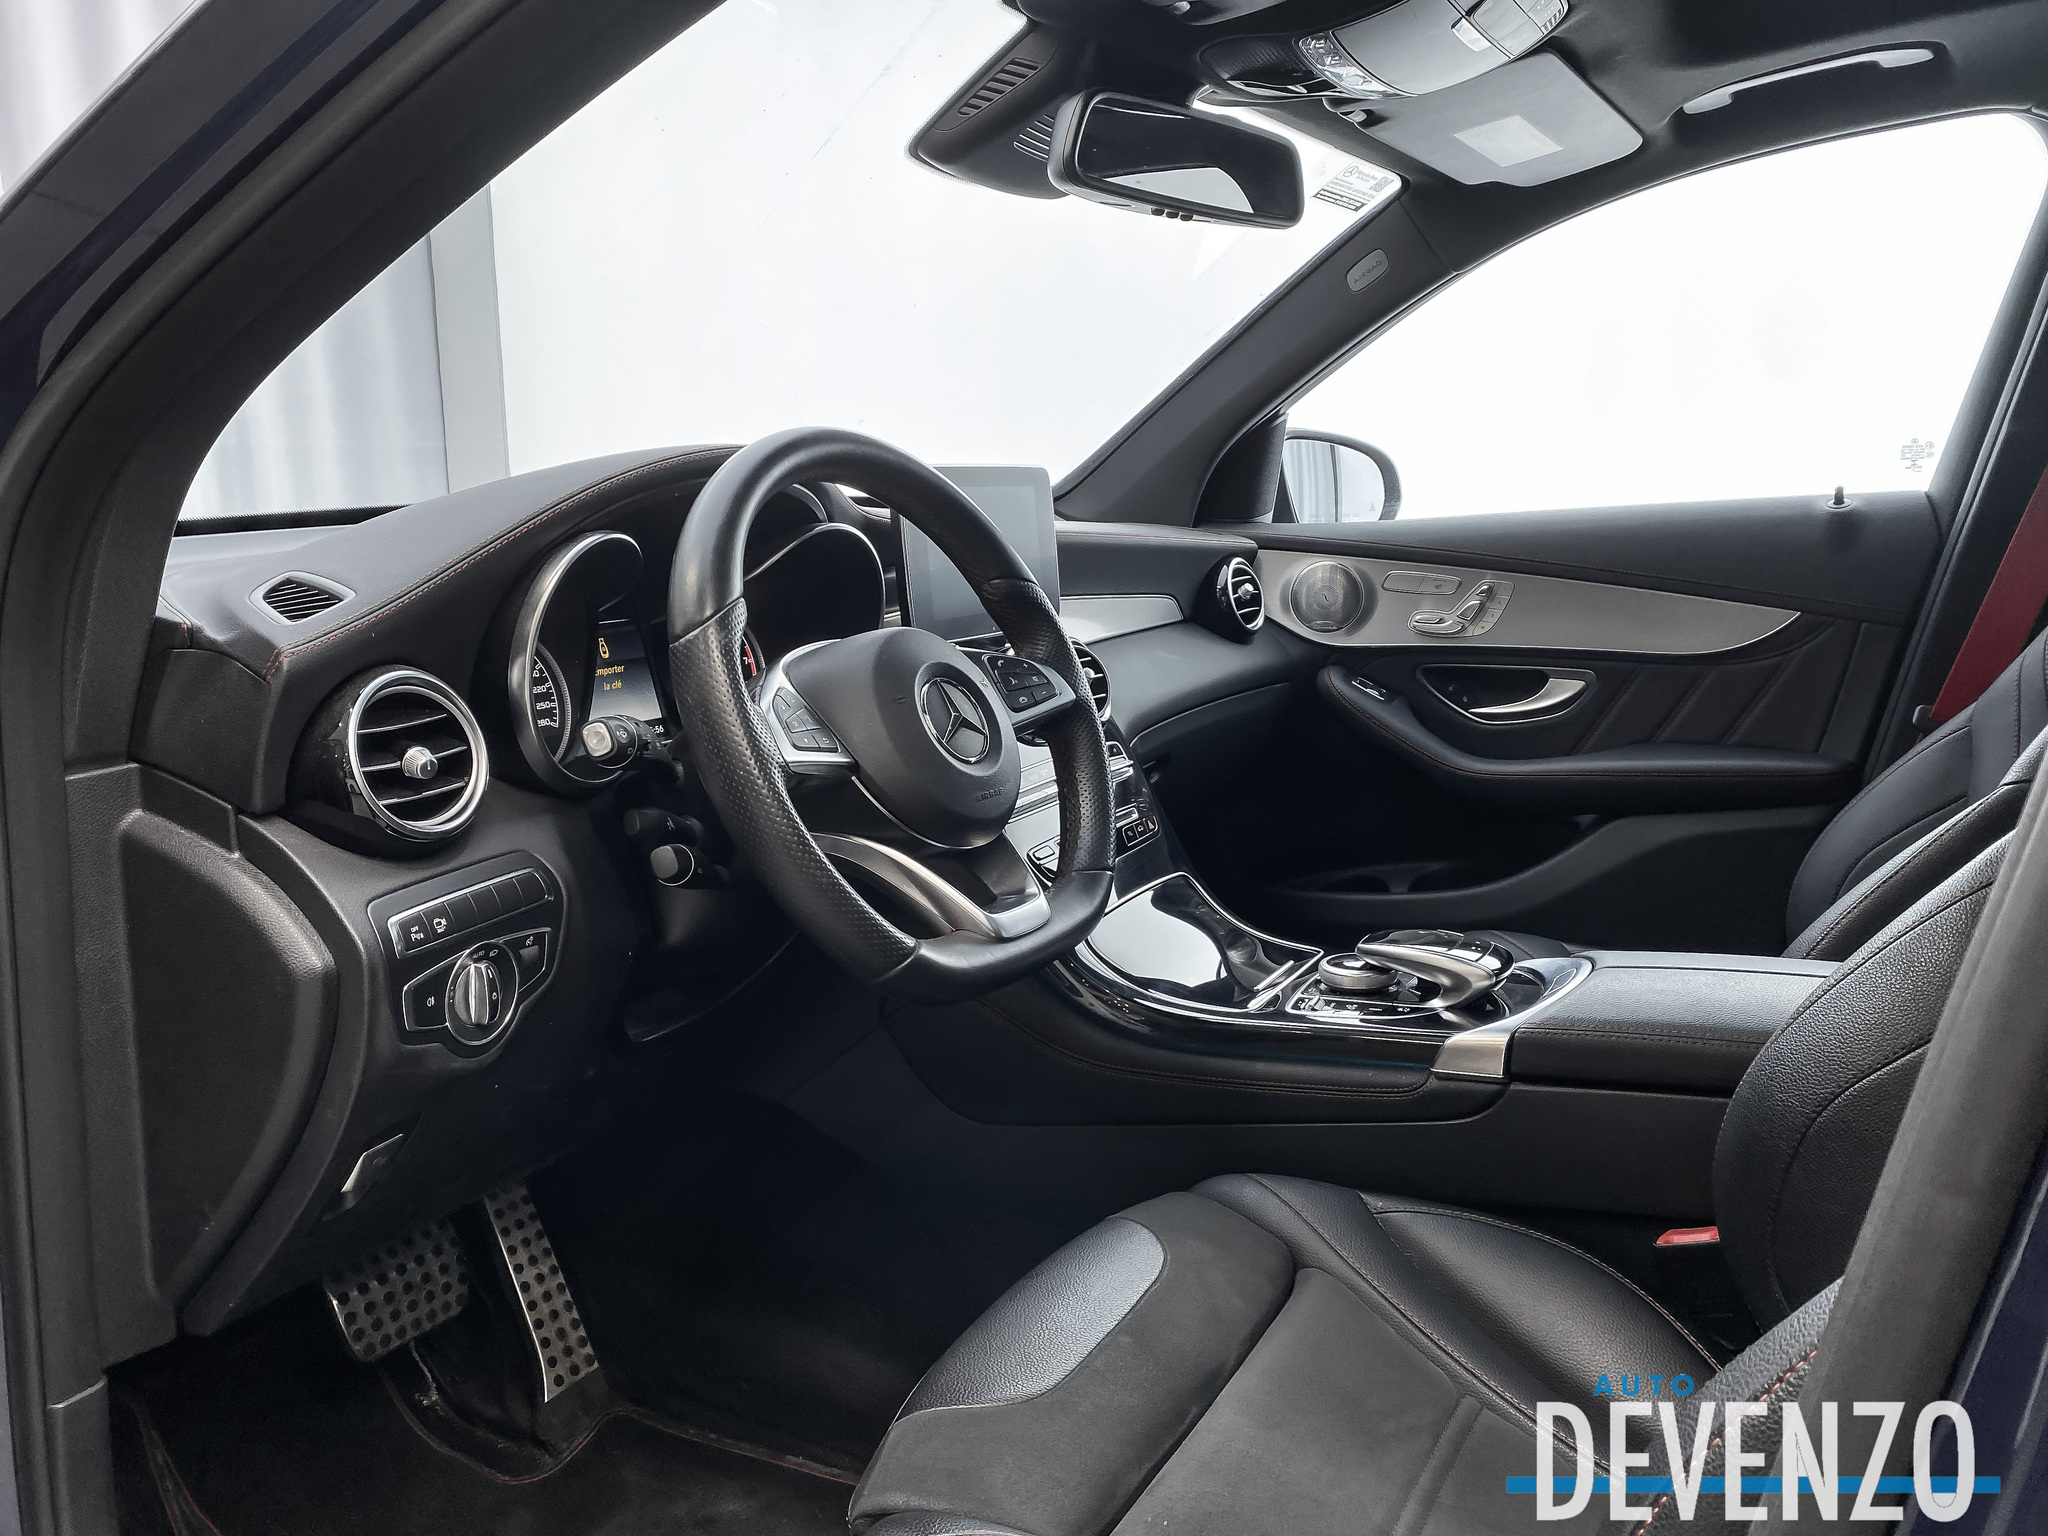 2018 Mercedes-Benz GLC AMG GLC43 4MATIC NIGHT PACKAGE 385HP complet